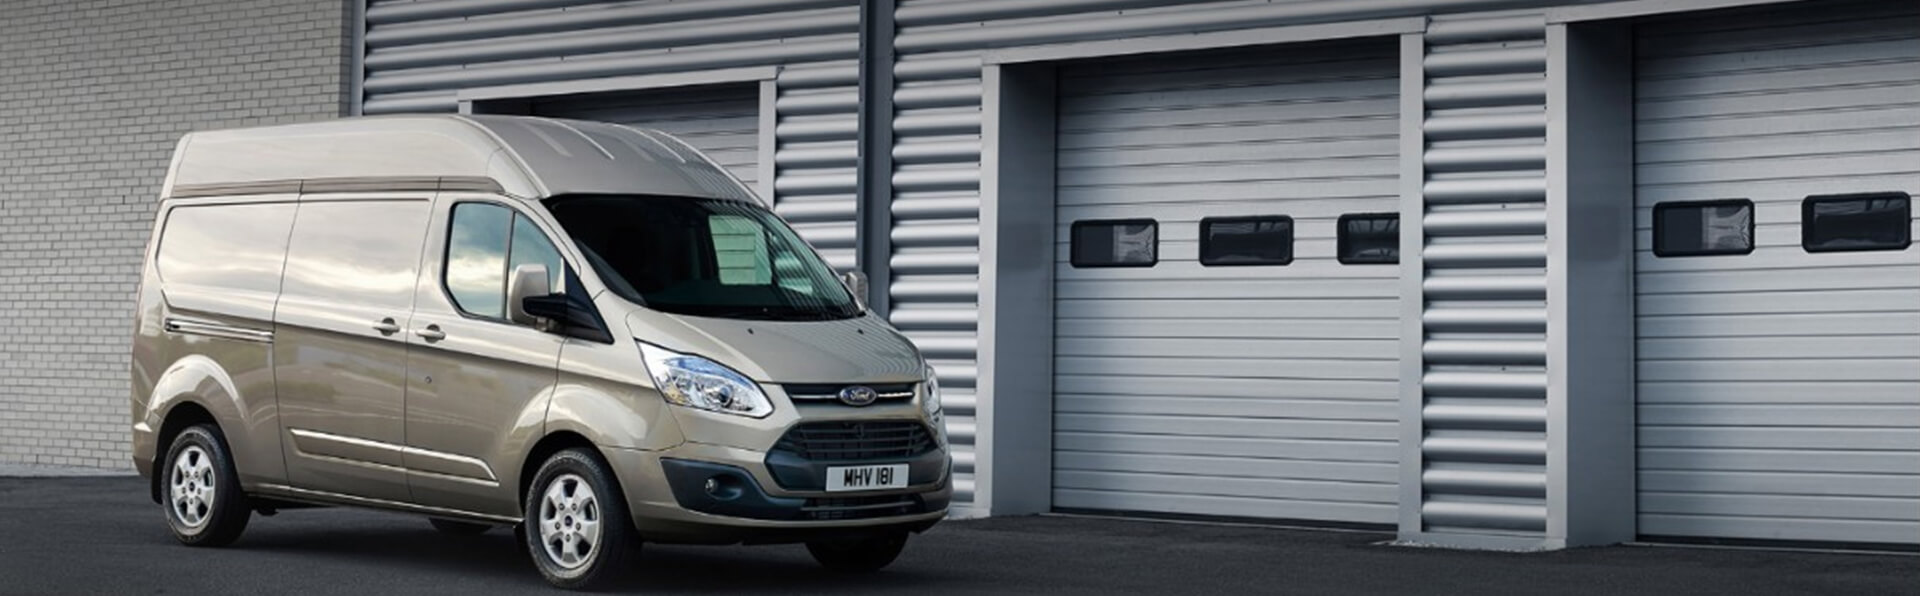 Choosing the Right Van for You